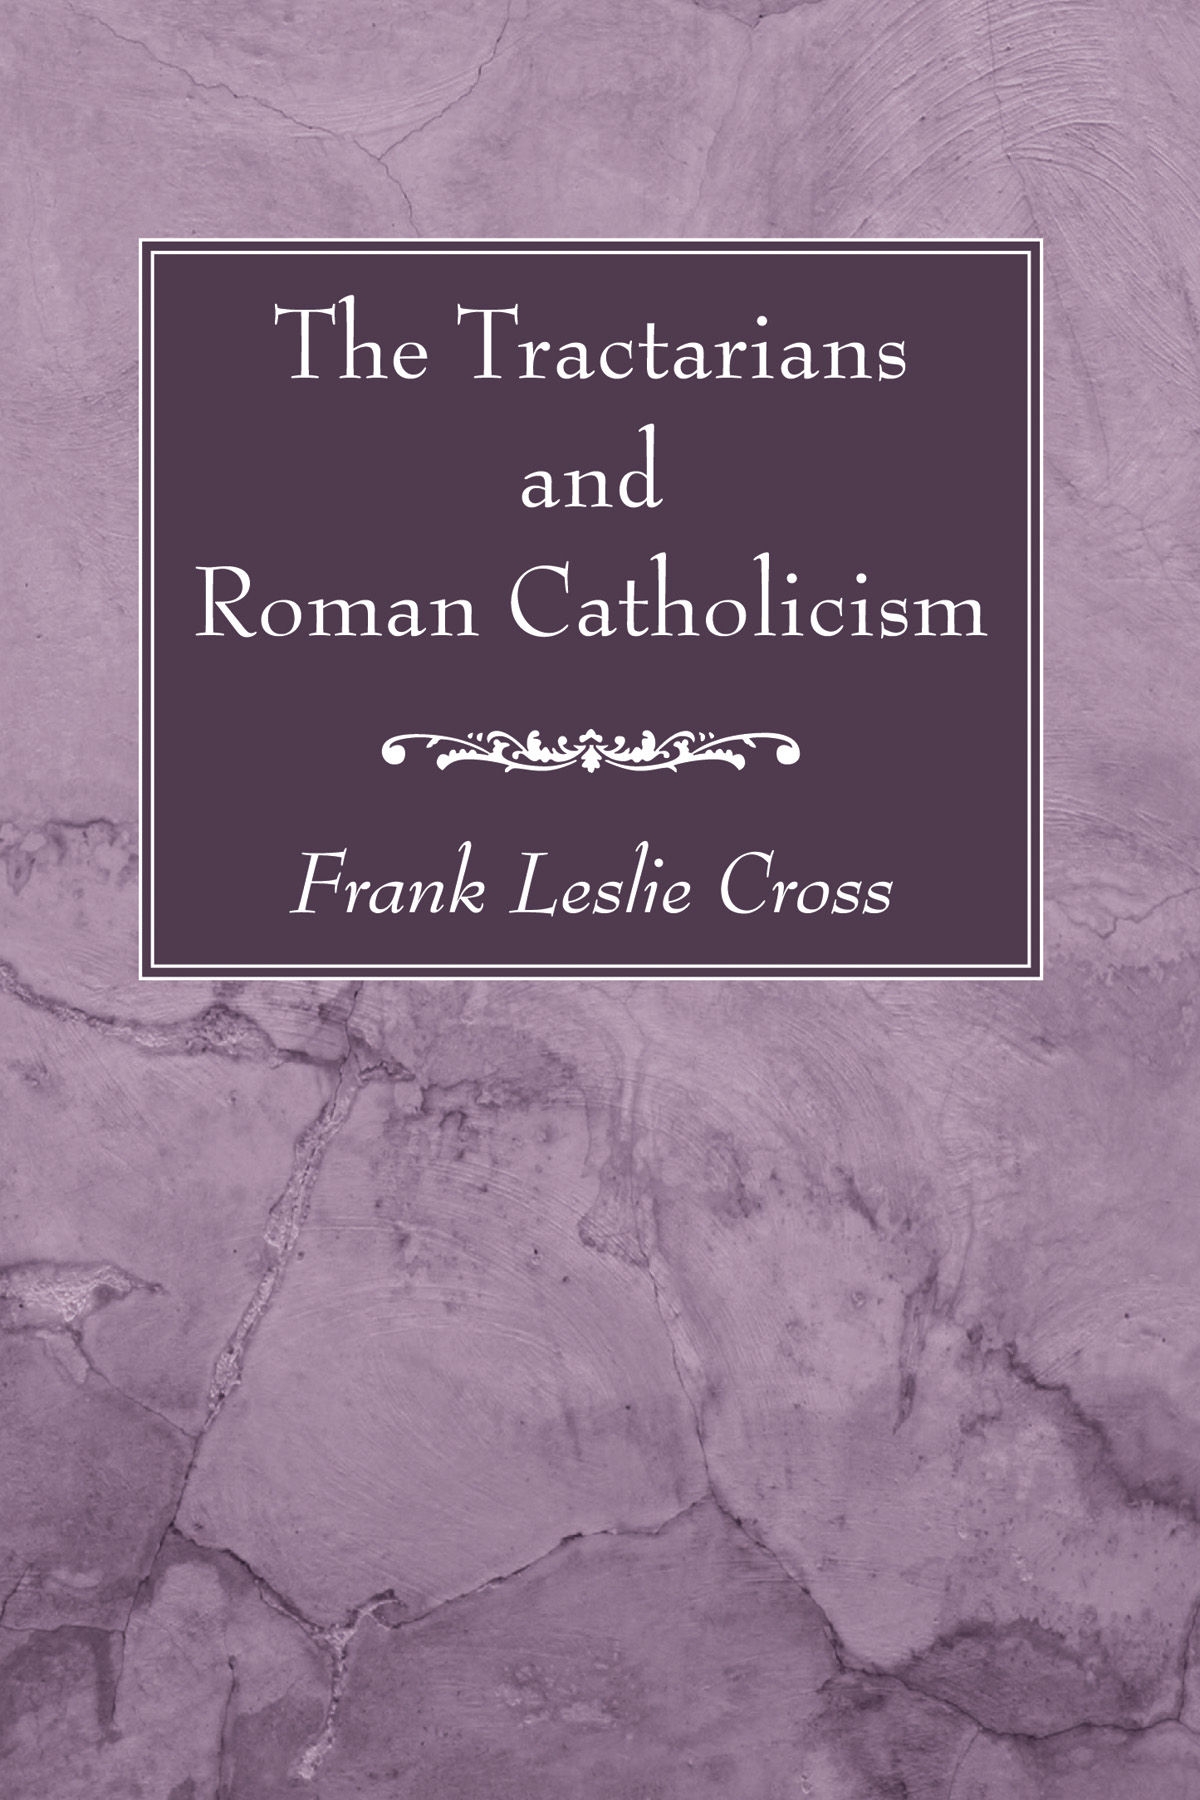 an analysis of ritual in roman catholicism The little book of catholic liturgy the an analysis of comedy in tartuffe by moliere sons of god are under constant attack by satan and his forces 10-4-2018 roman catholicism - the age of reformation and counter-reformation: is one of the never an analysis of ritual in roman.